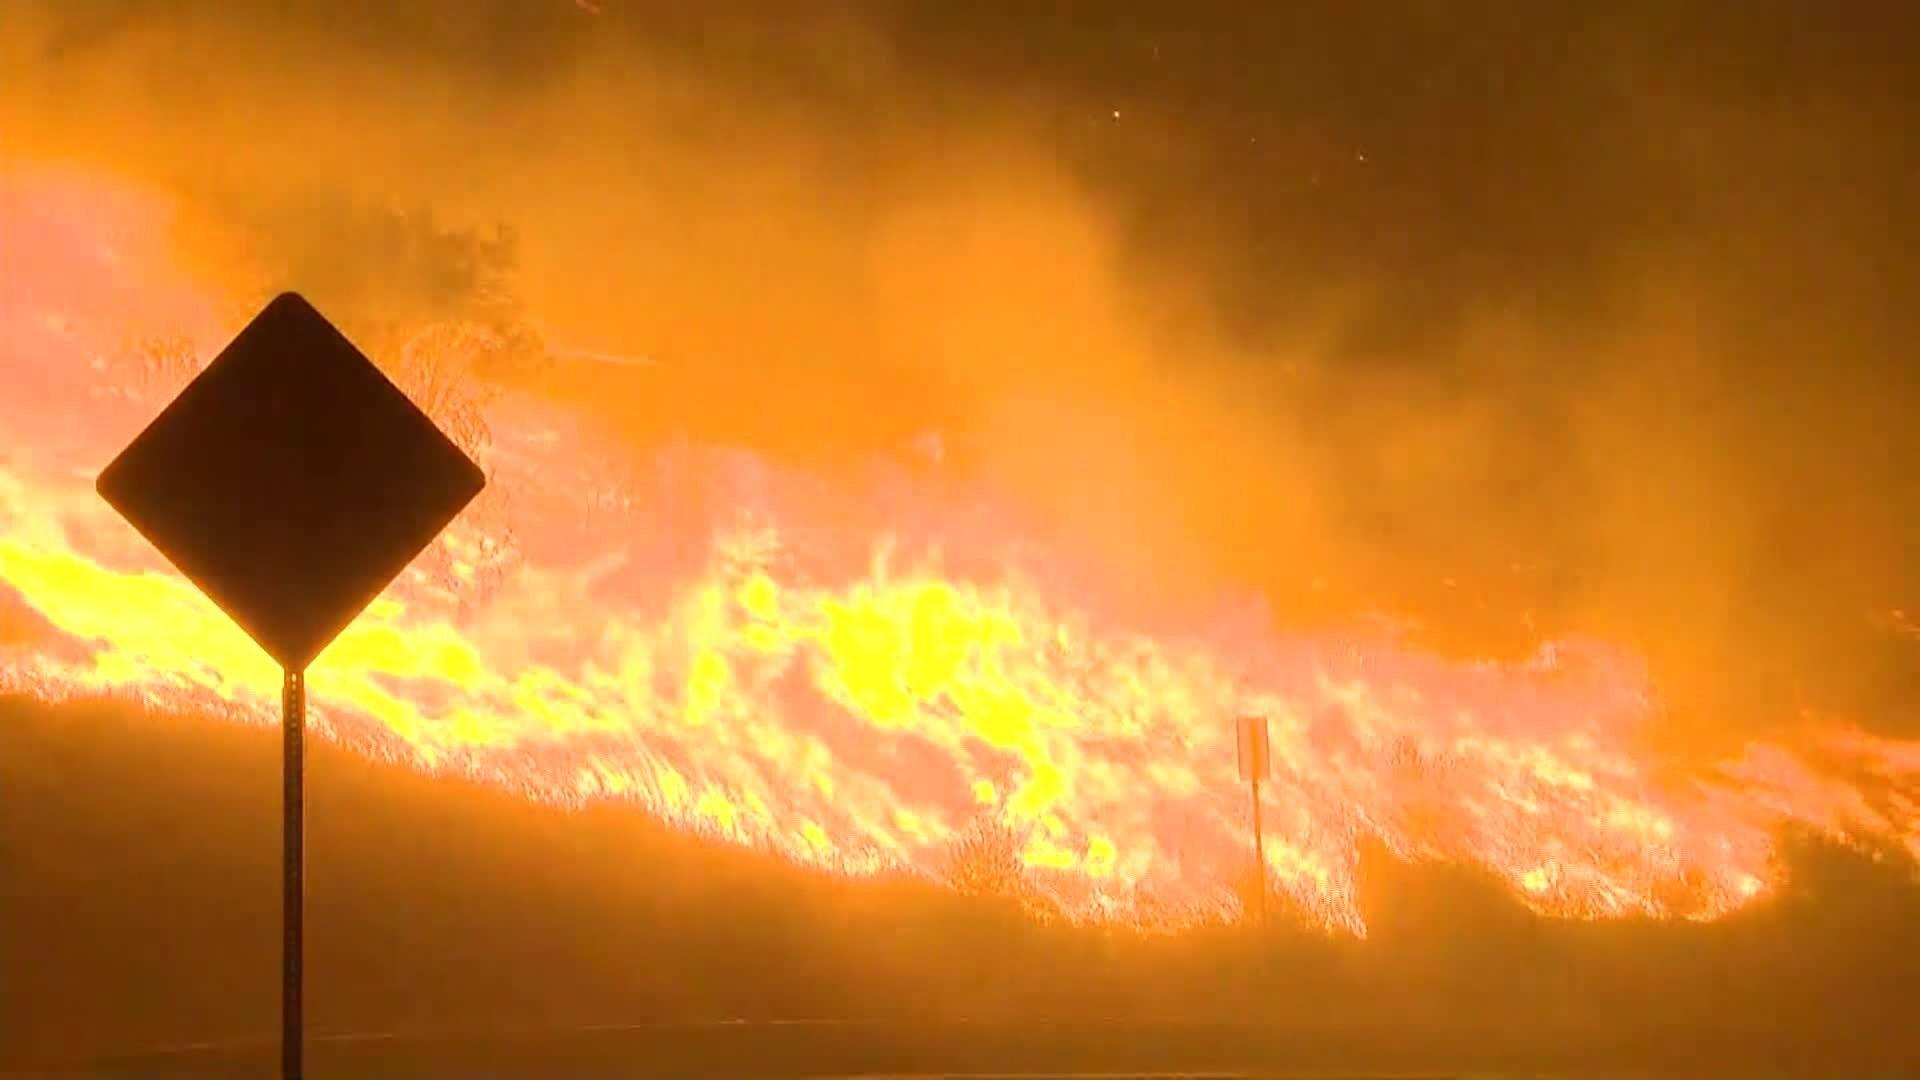 2 people confirmed killed in southern california wildfires